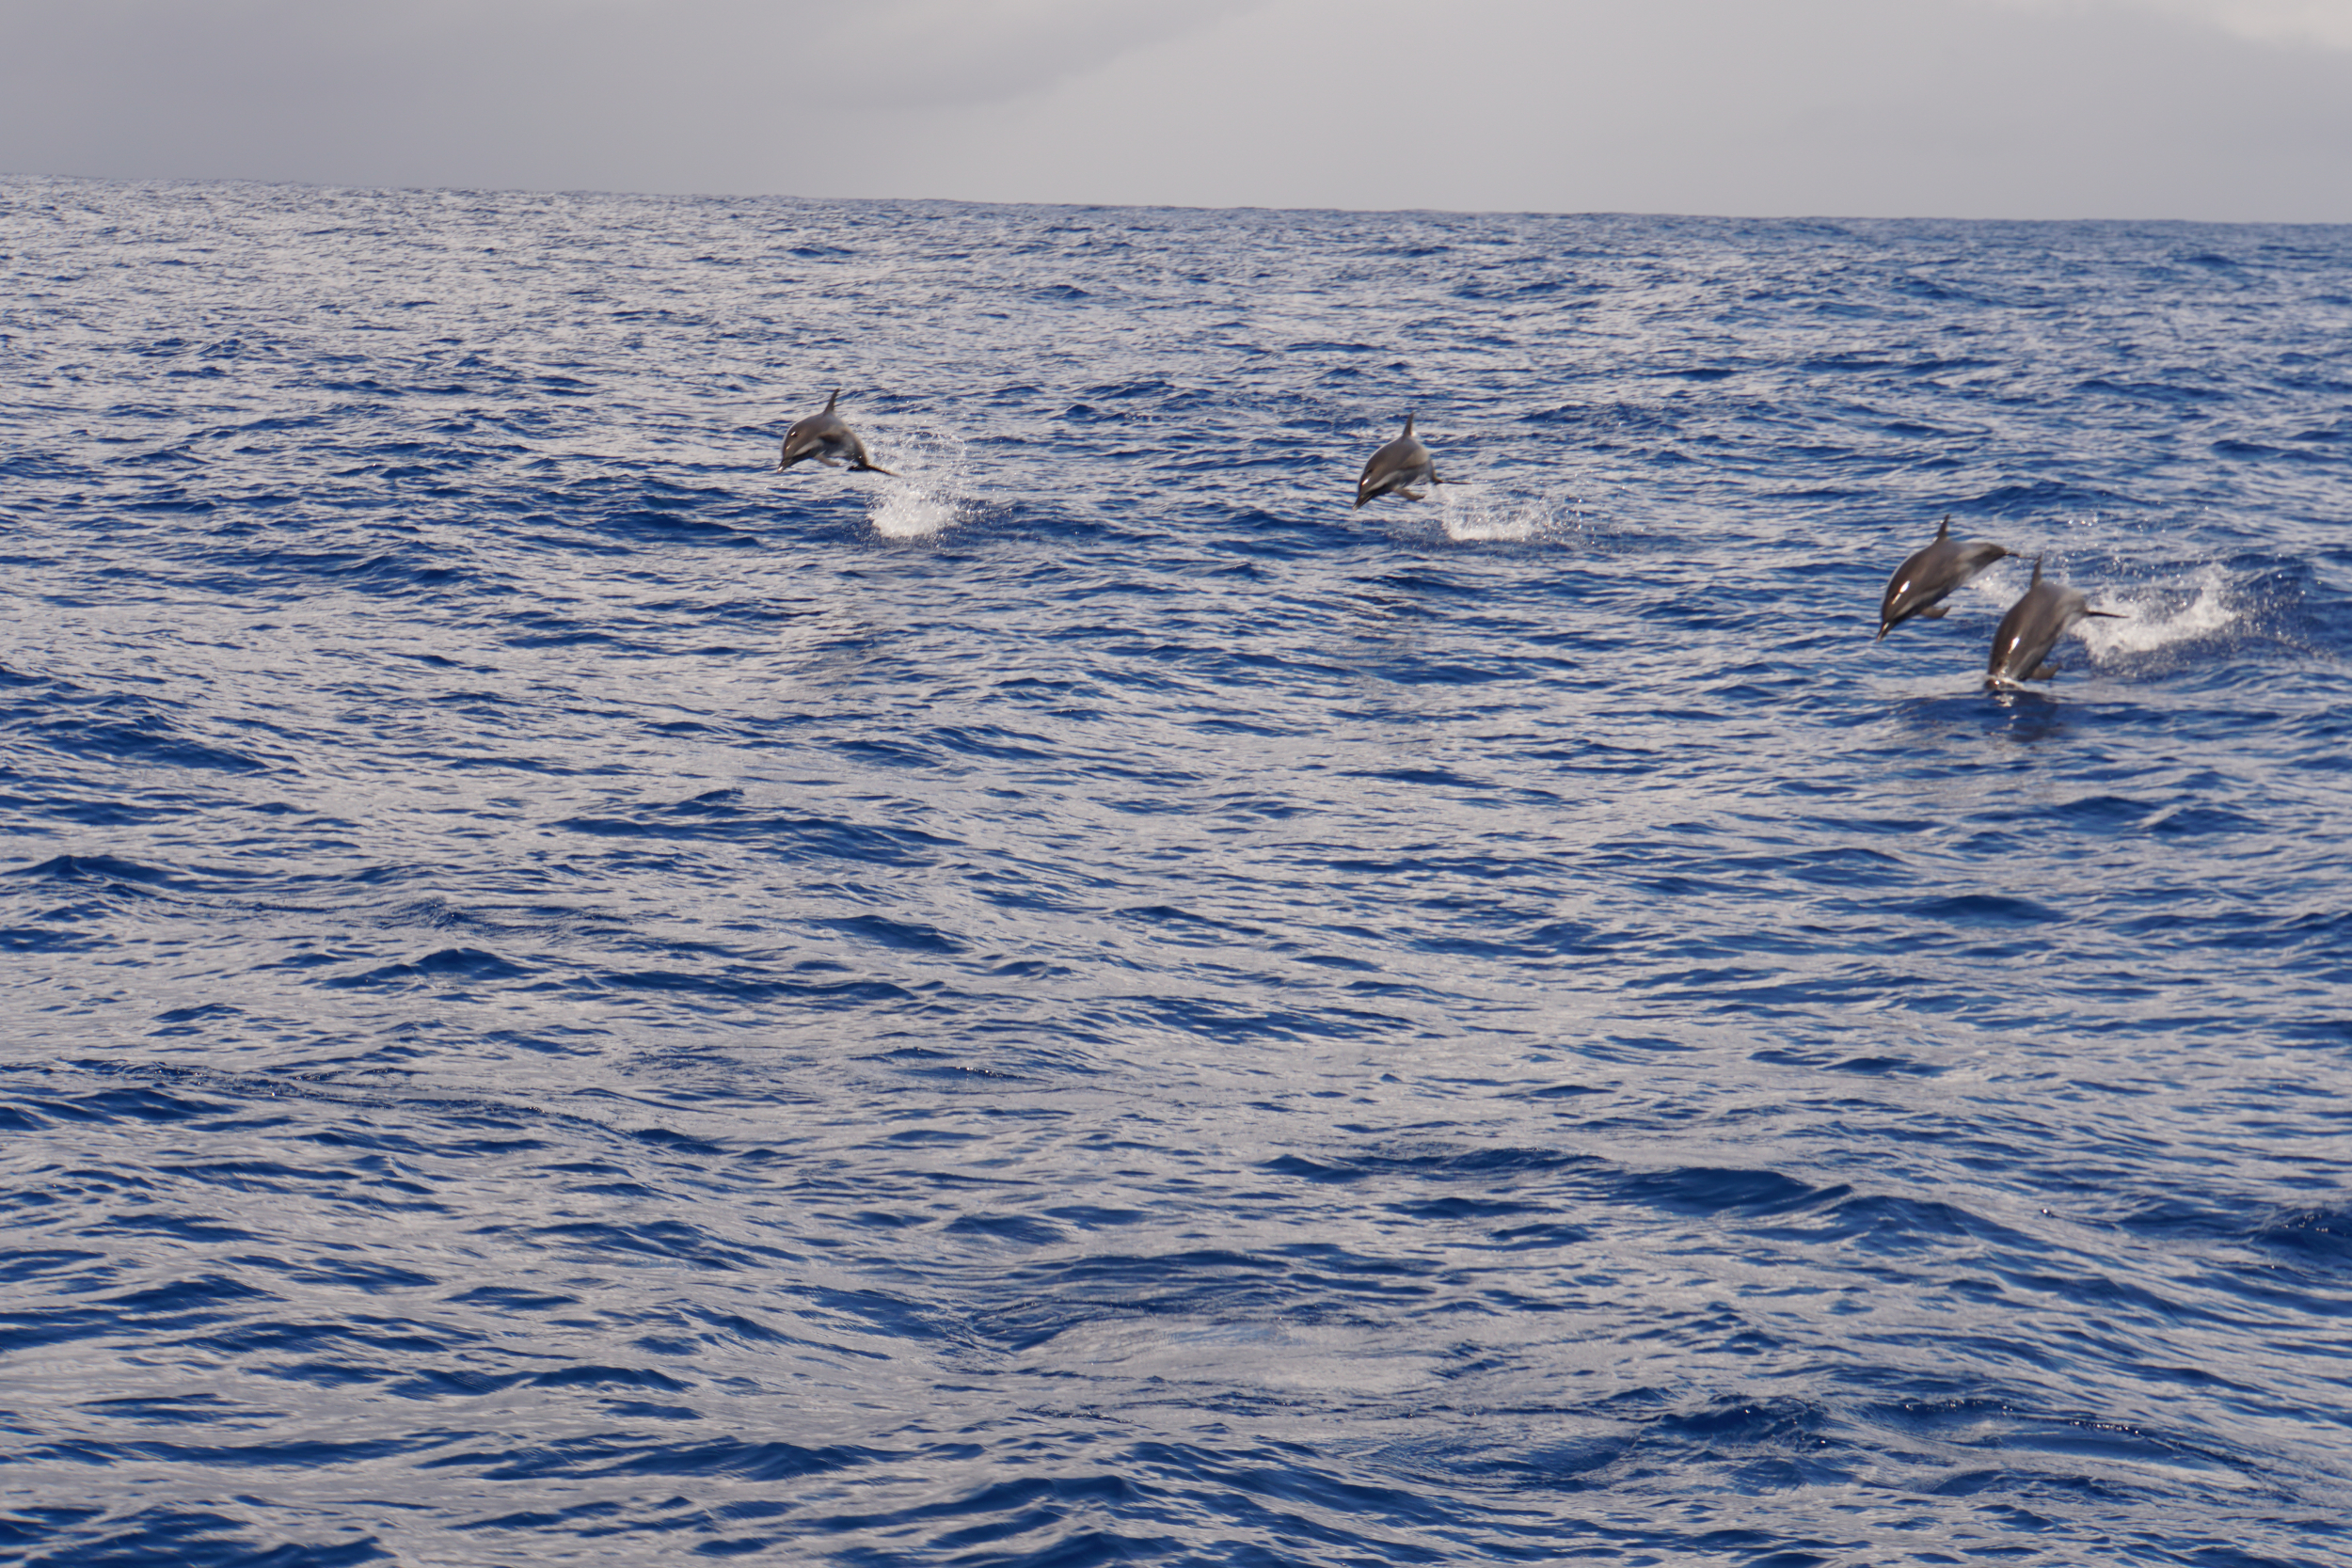 18. Dolphins coming to play